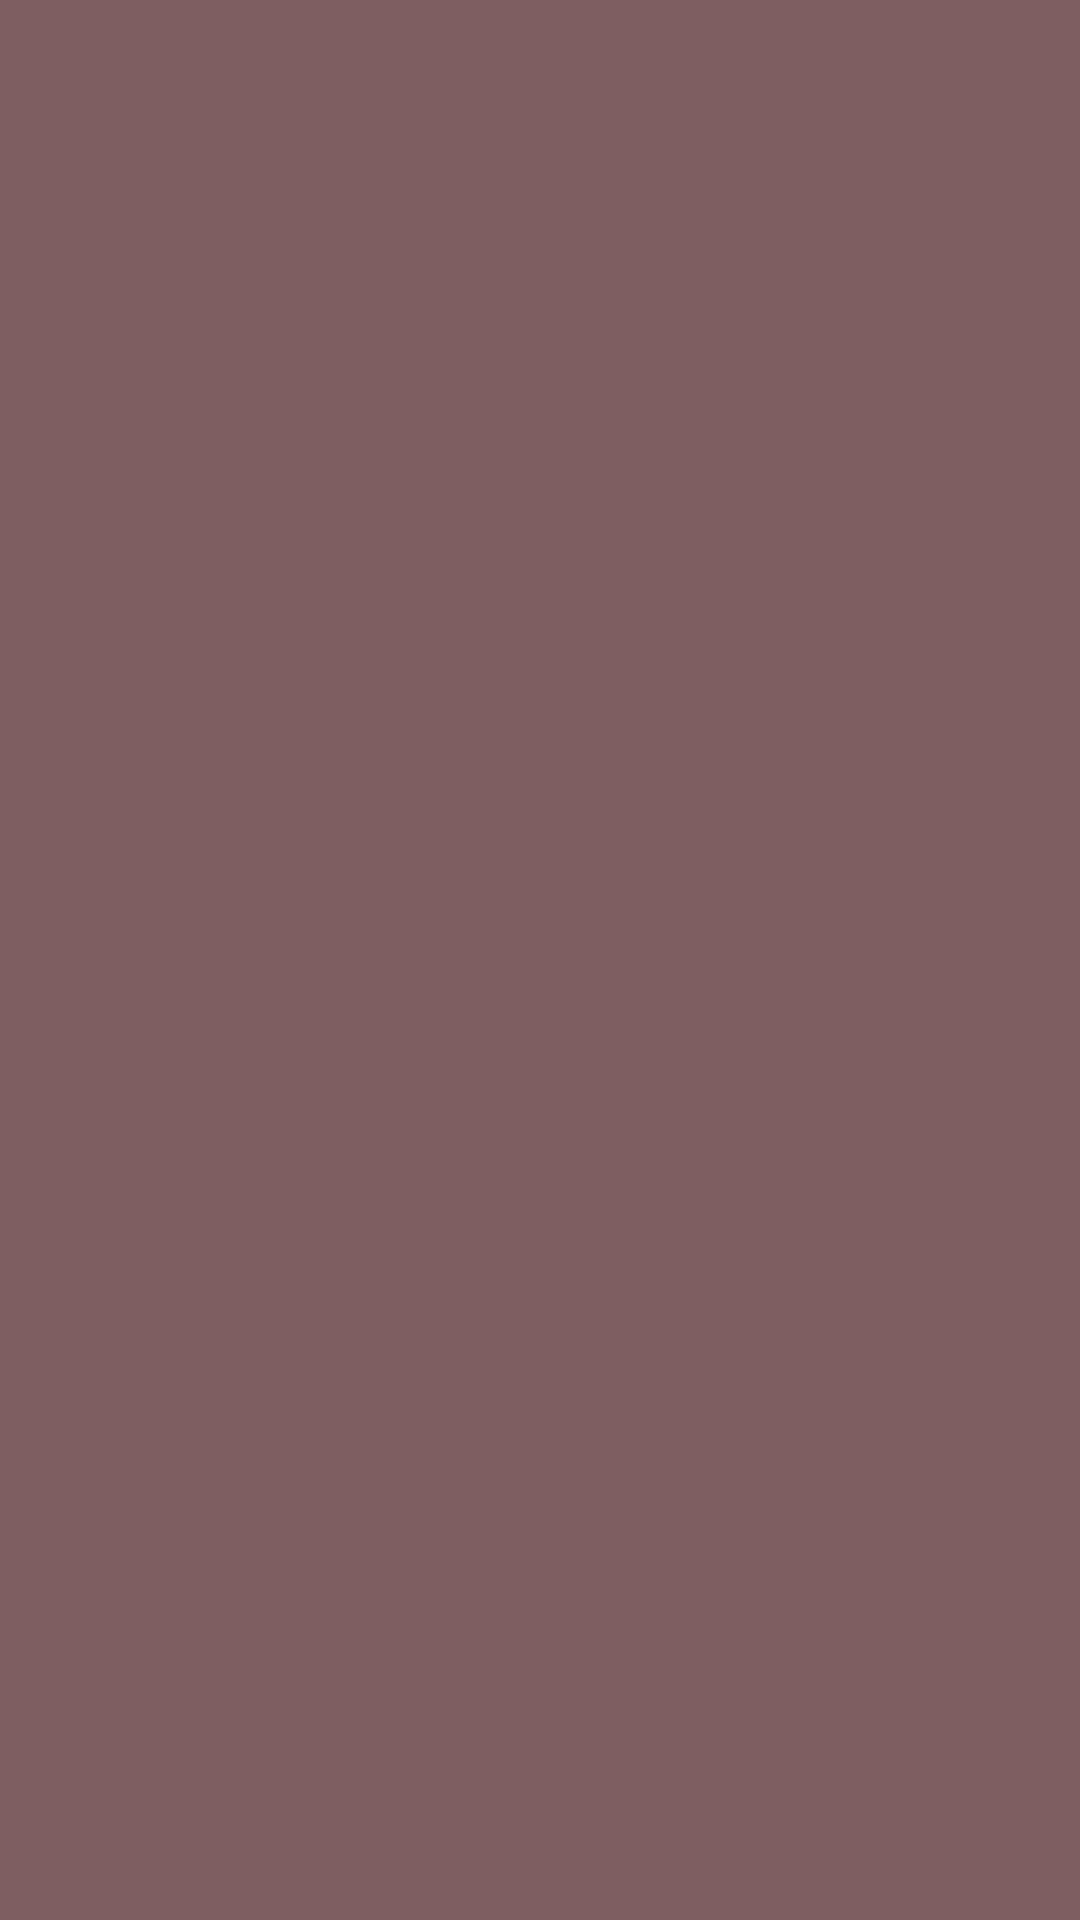 1080x1920 Deep Taupe Solid Color Background